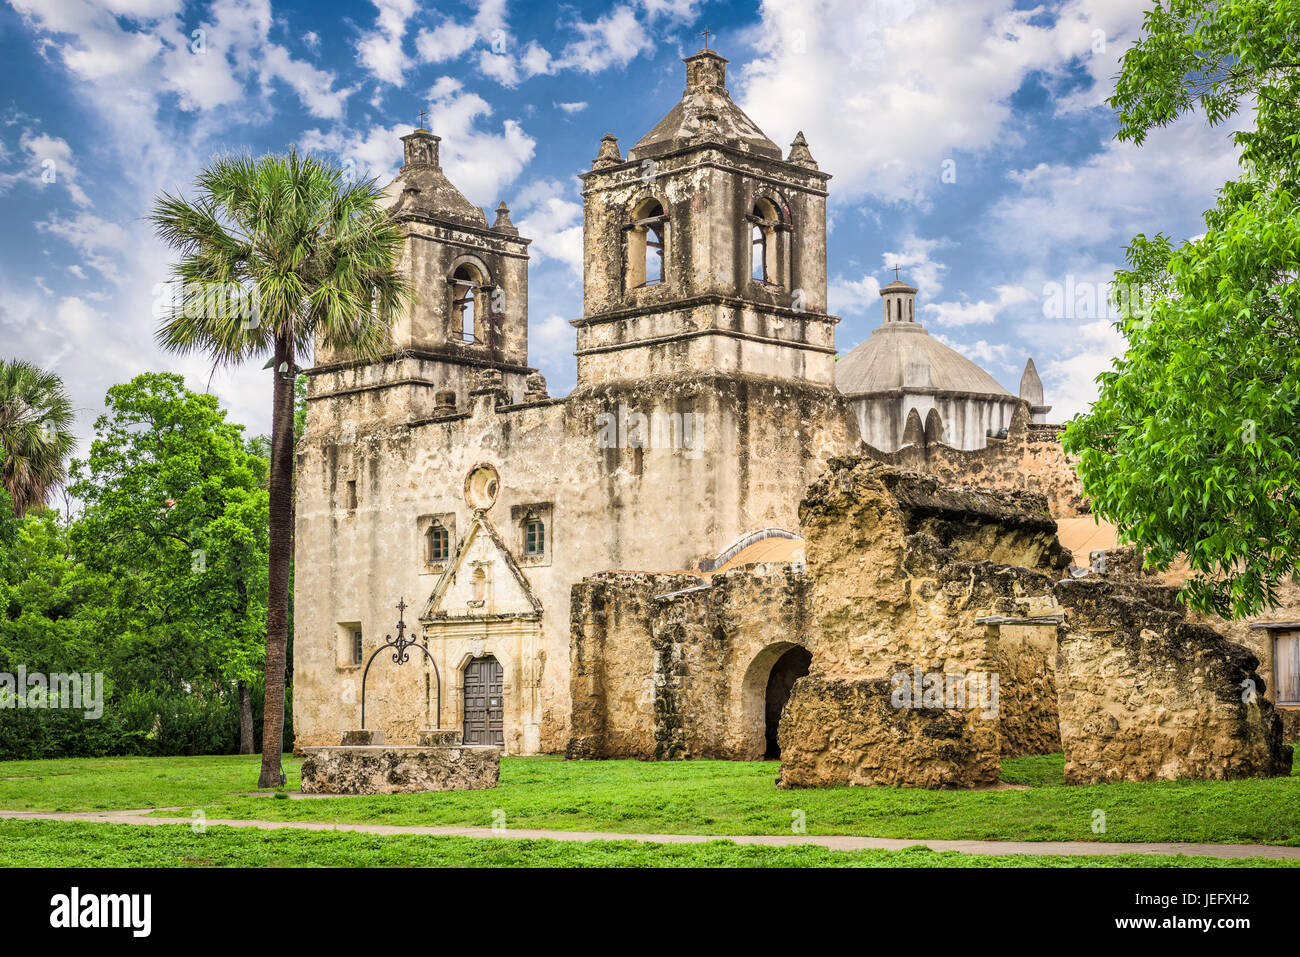 San Antonio, Texas, USA at Mission San Jose. - Stock Image